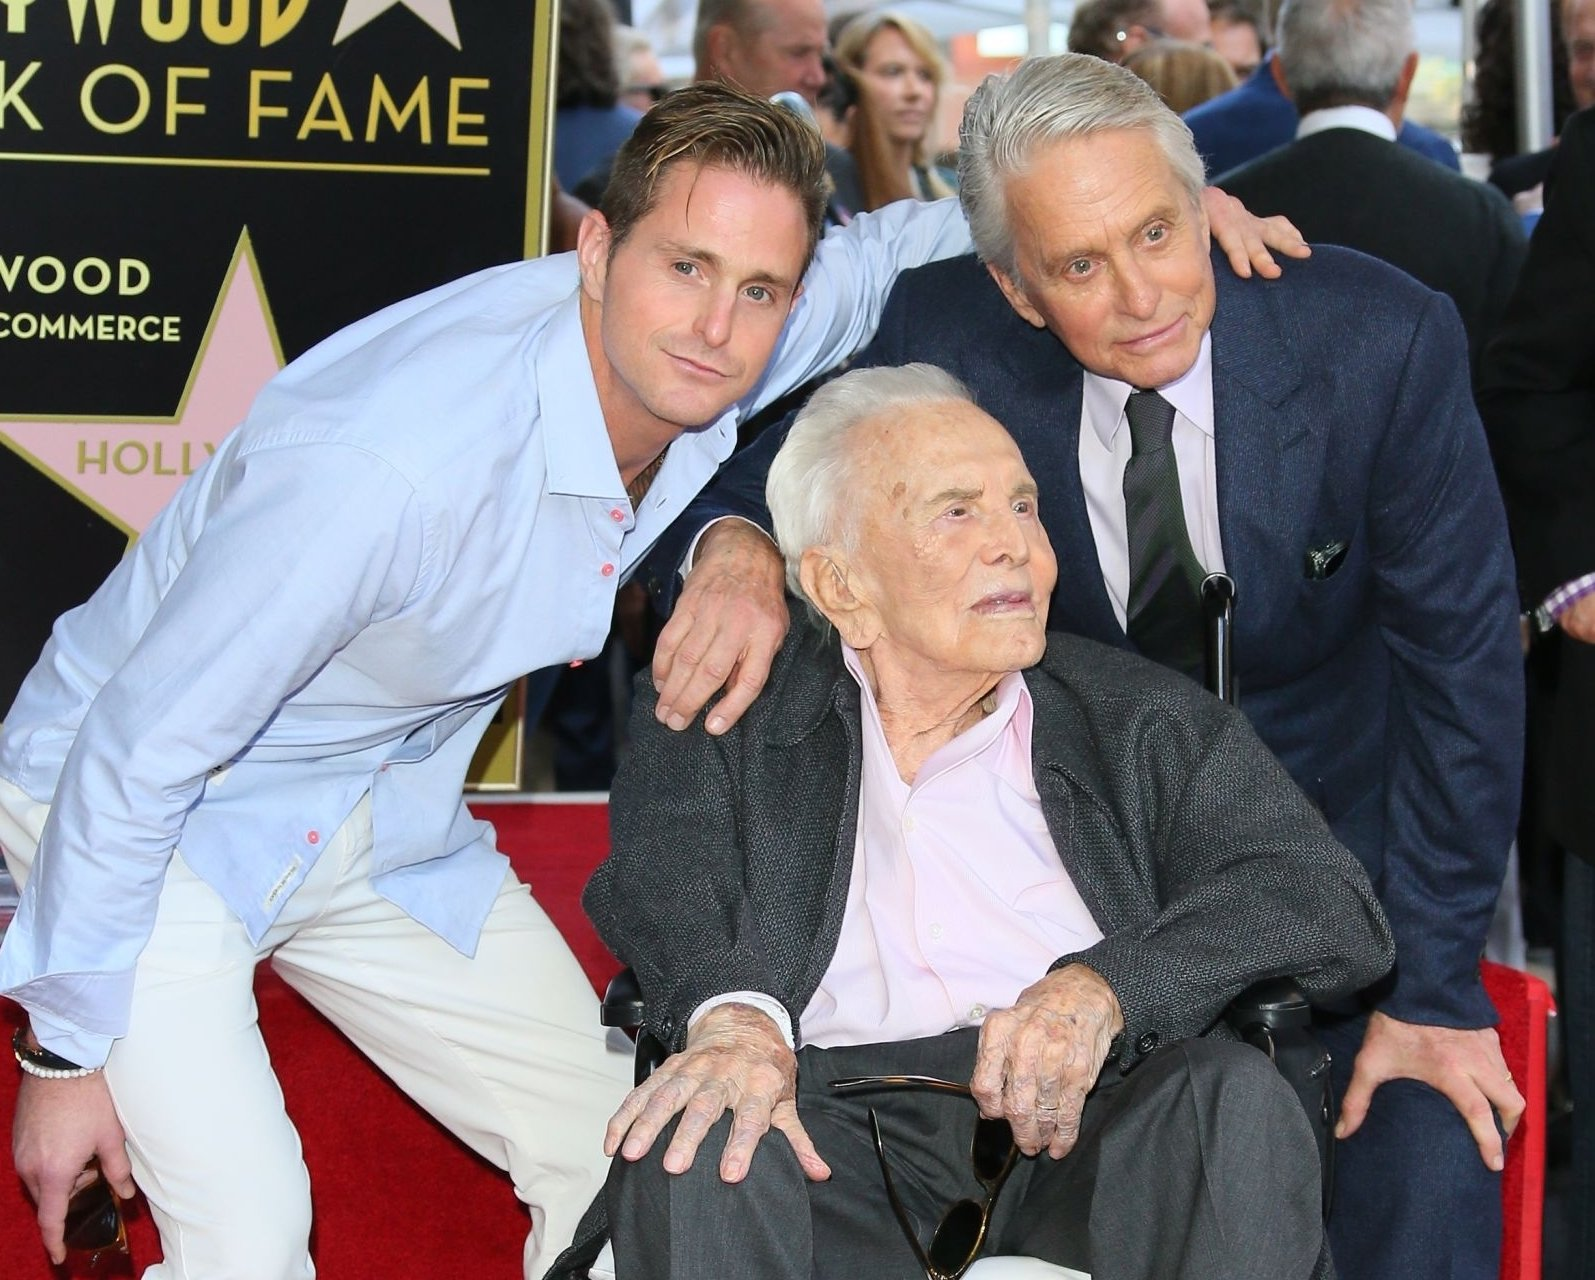 Image Credit: Getty Images/Michael Douglas with son and father